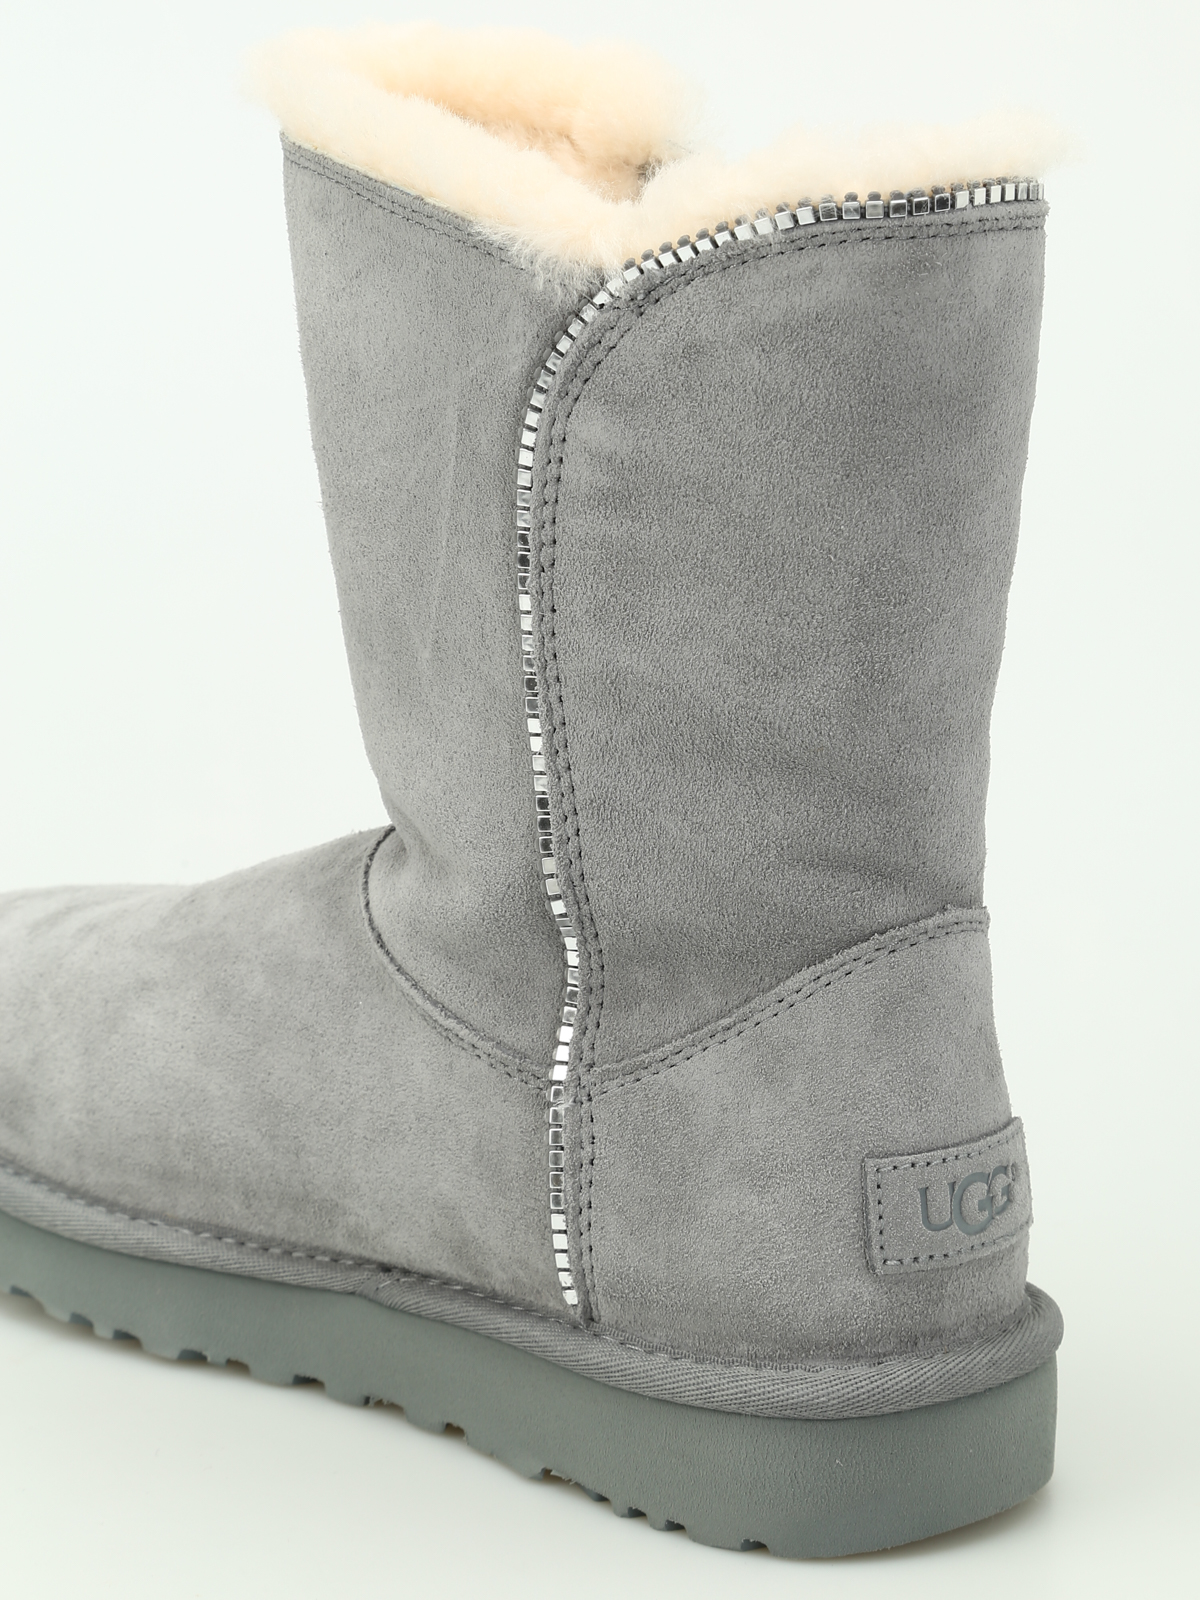 16d3bc414f4 Ugg - Marice grey suede booties - ankle boots - 1019633W GEYSER